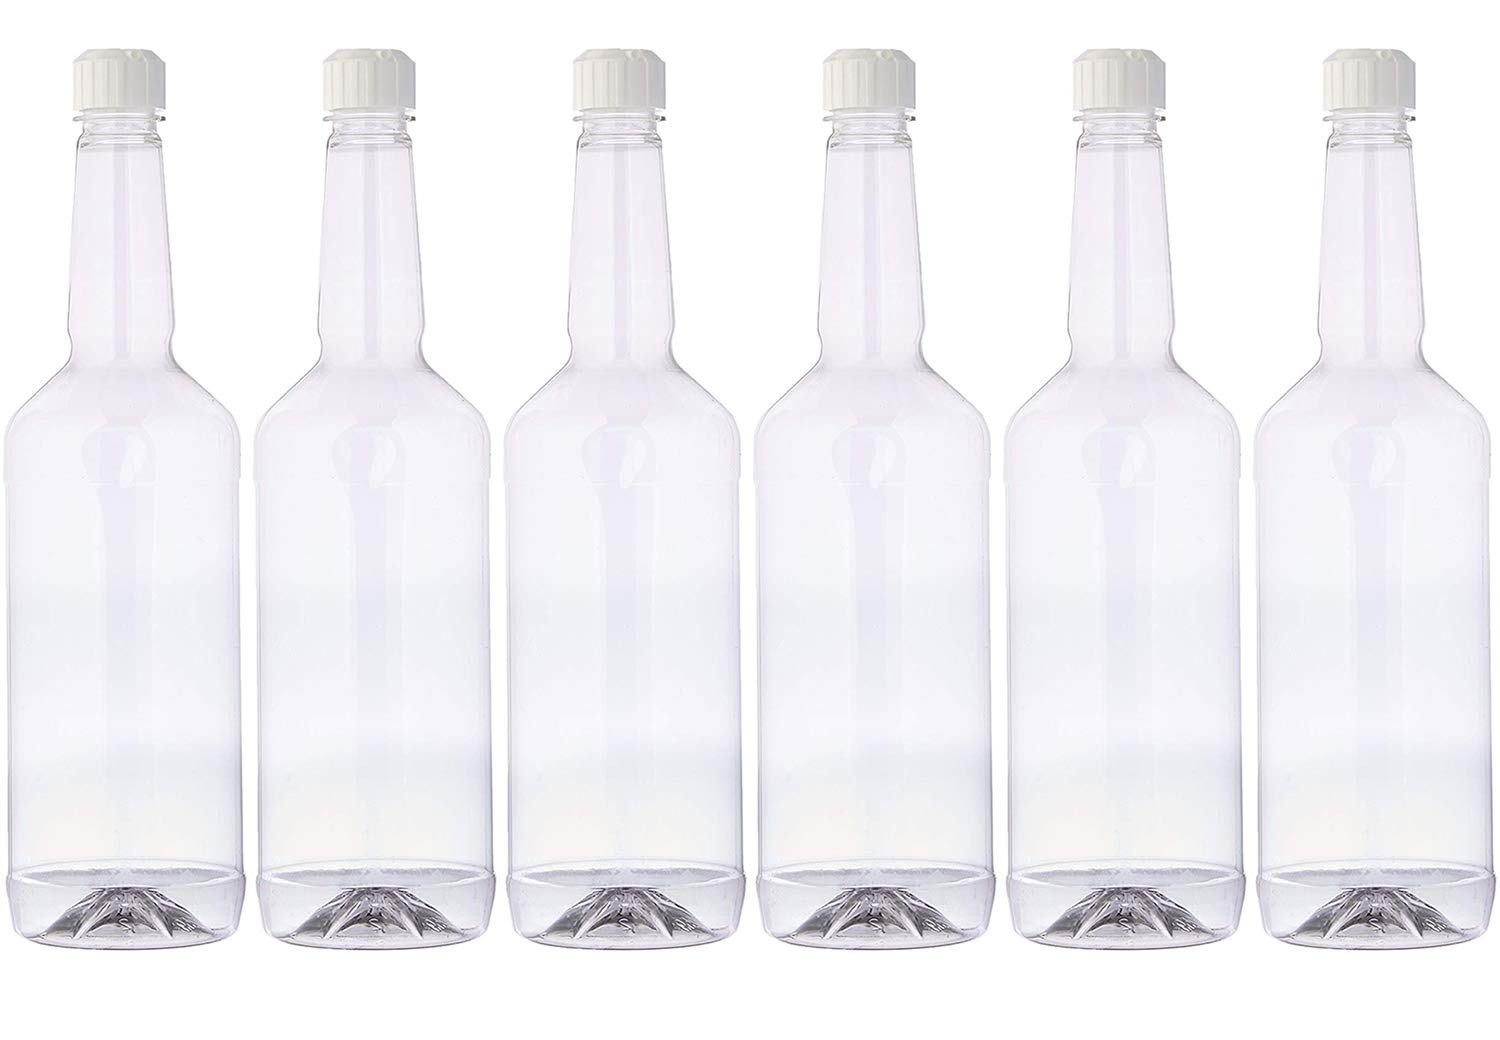 Concession Express Long Neck 32oz Quart Bottles with Flip-Top Caps by Concession Express